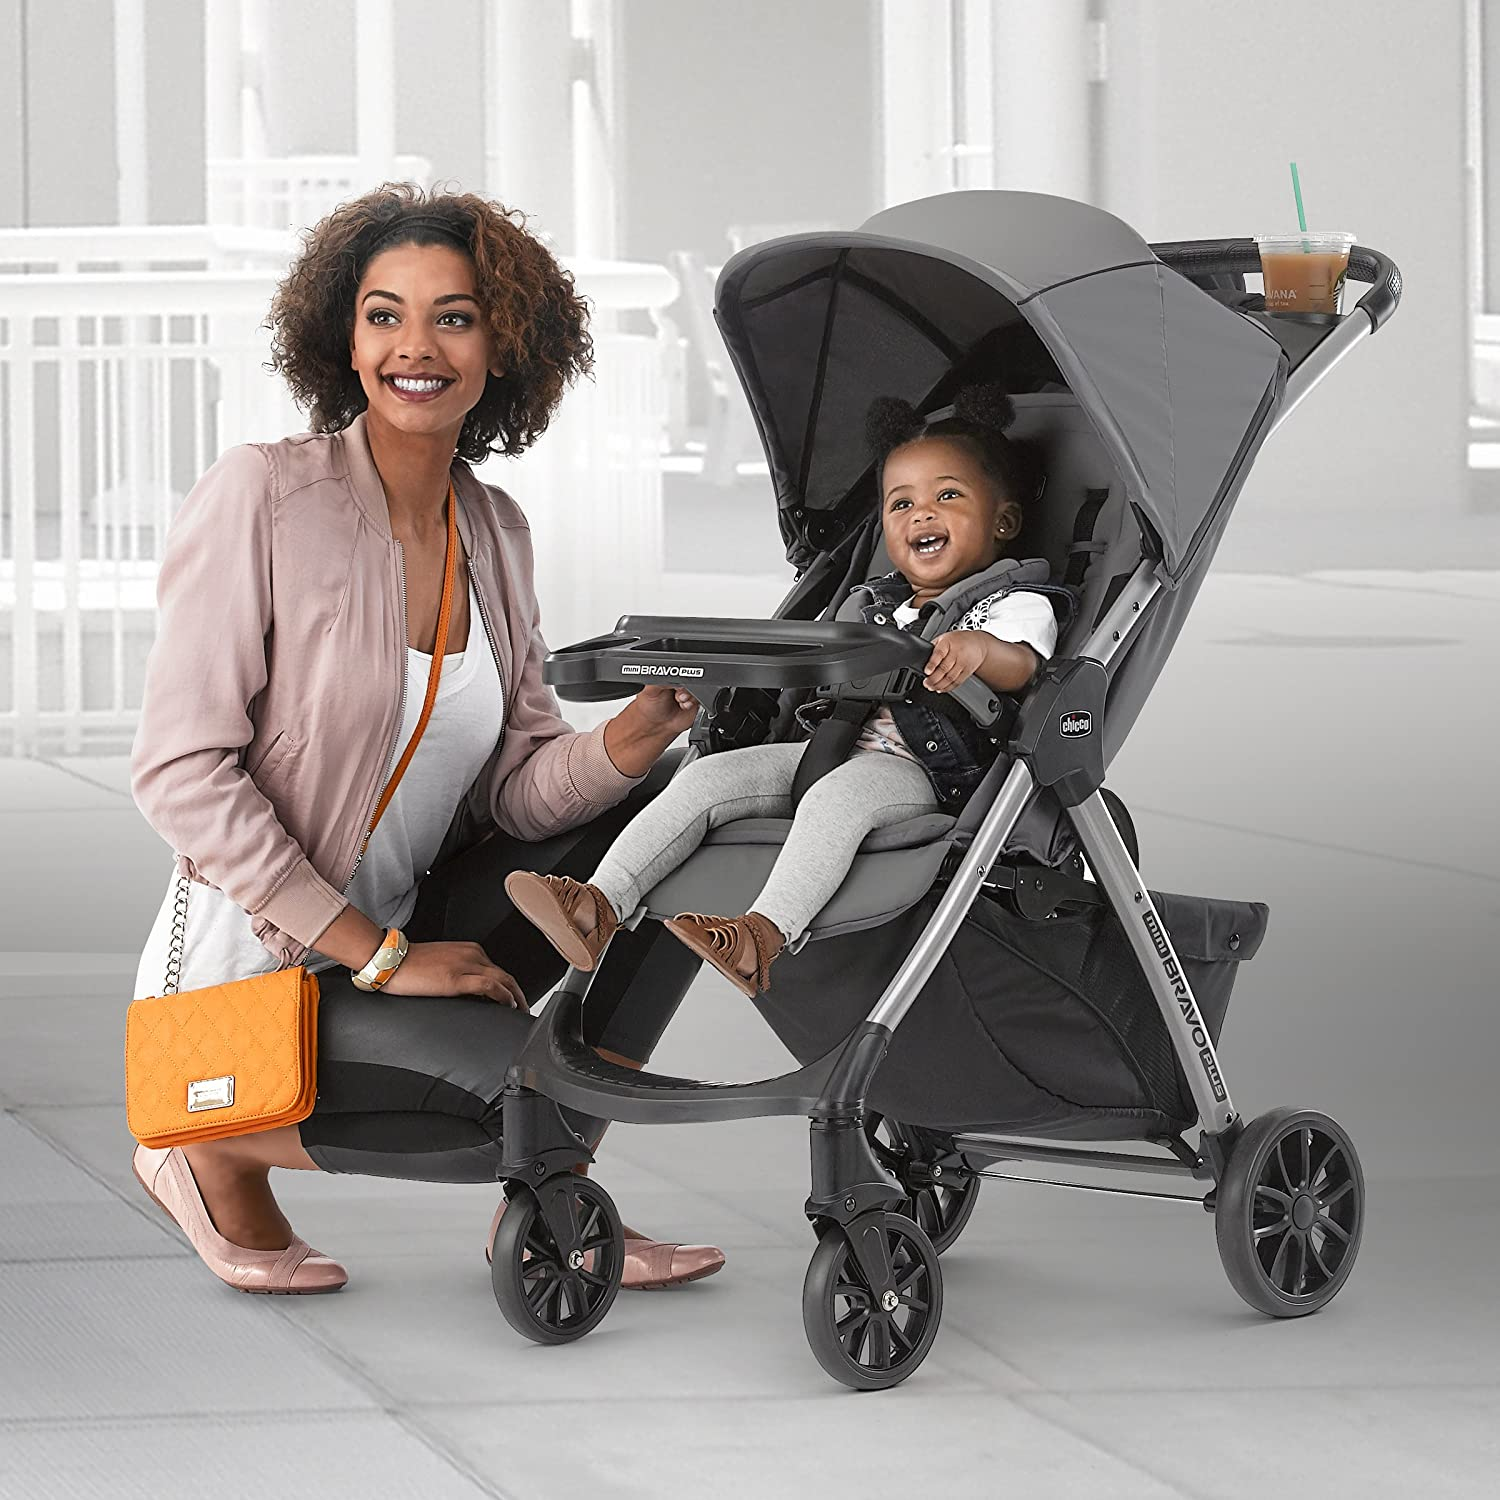 Amazon.com: Chicco Mini Bravo Plus carriola, grafito: Baby